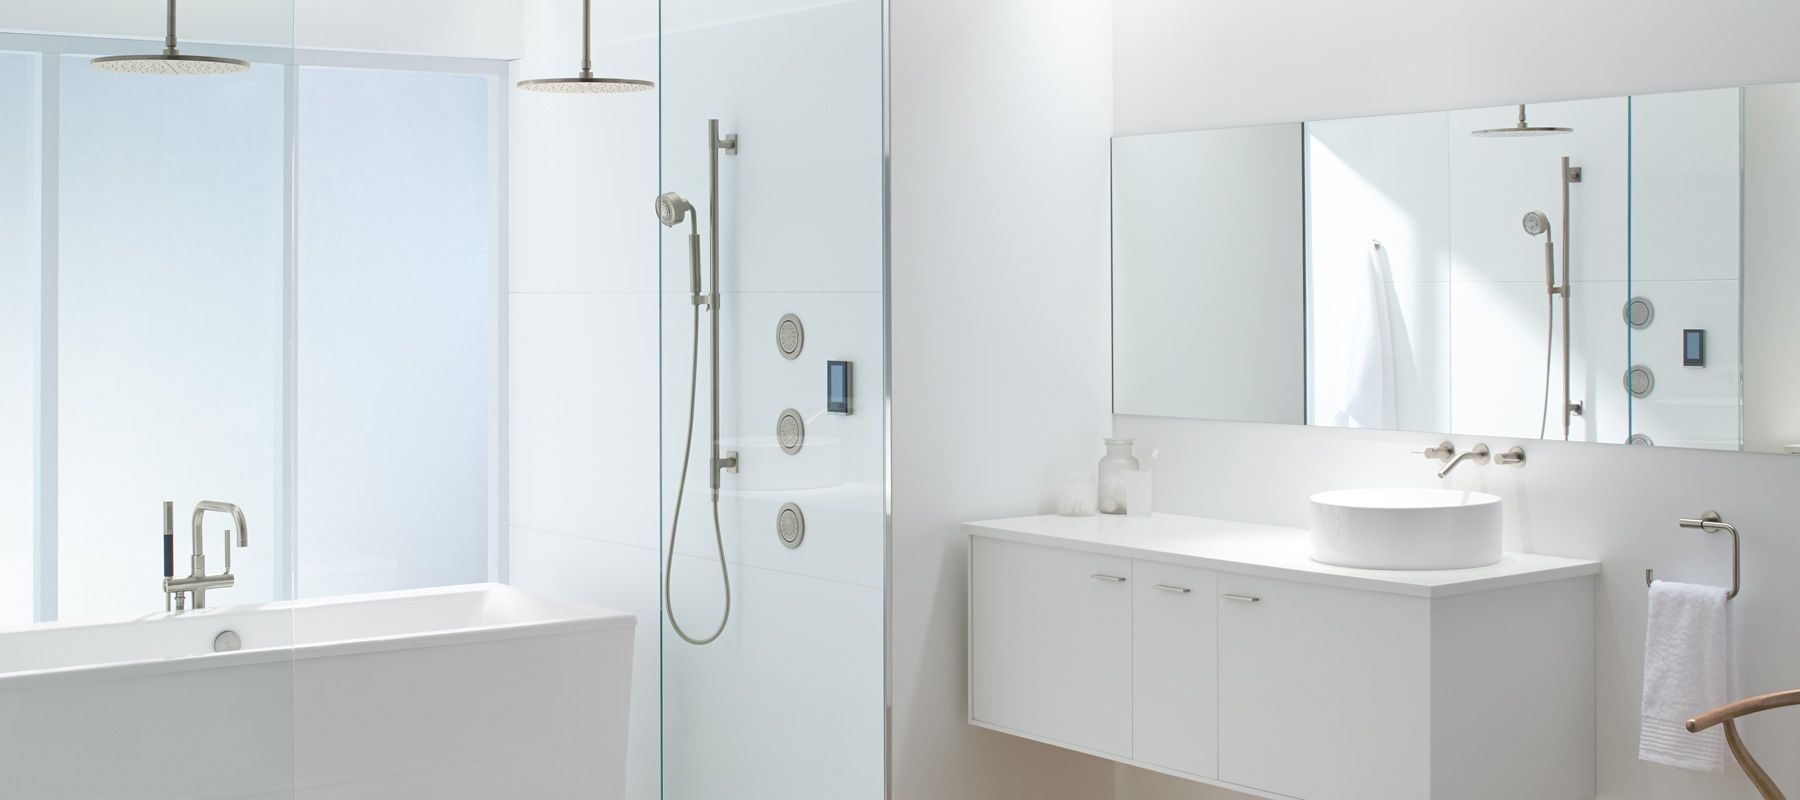 sleek modern style - Bathroom Accessories Kohler